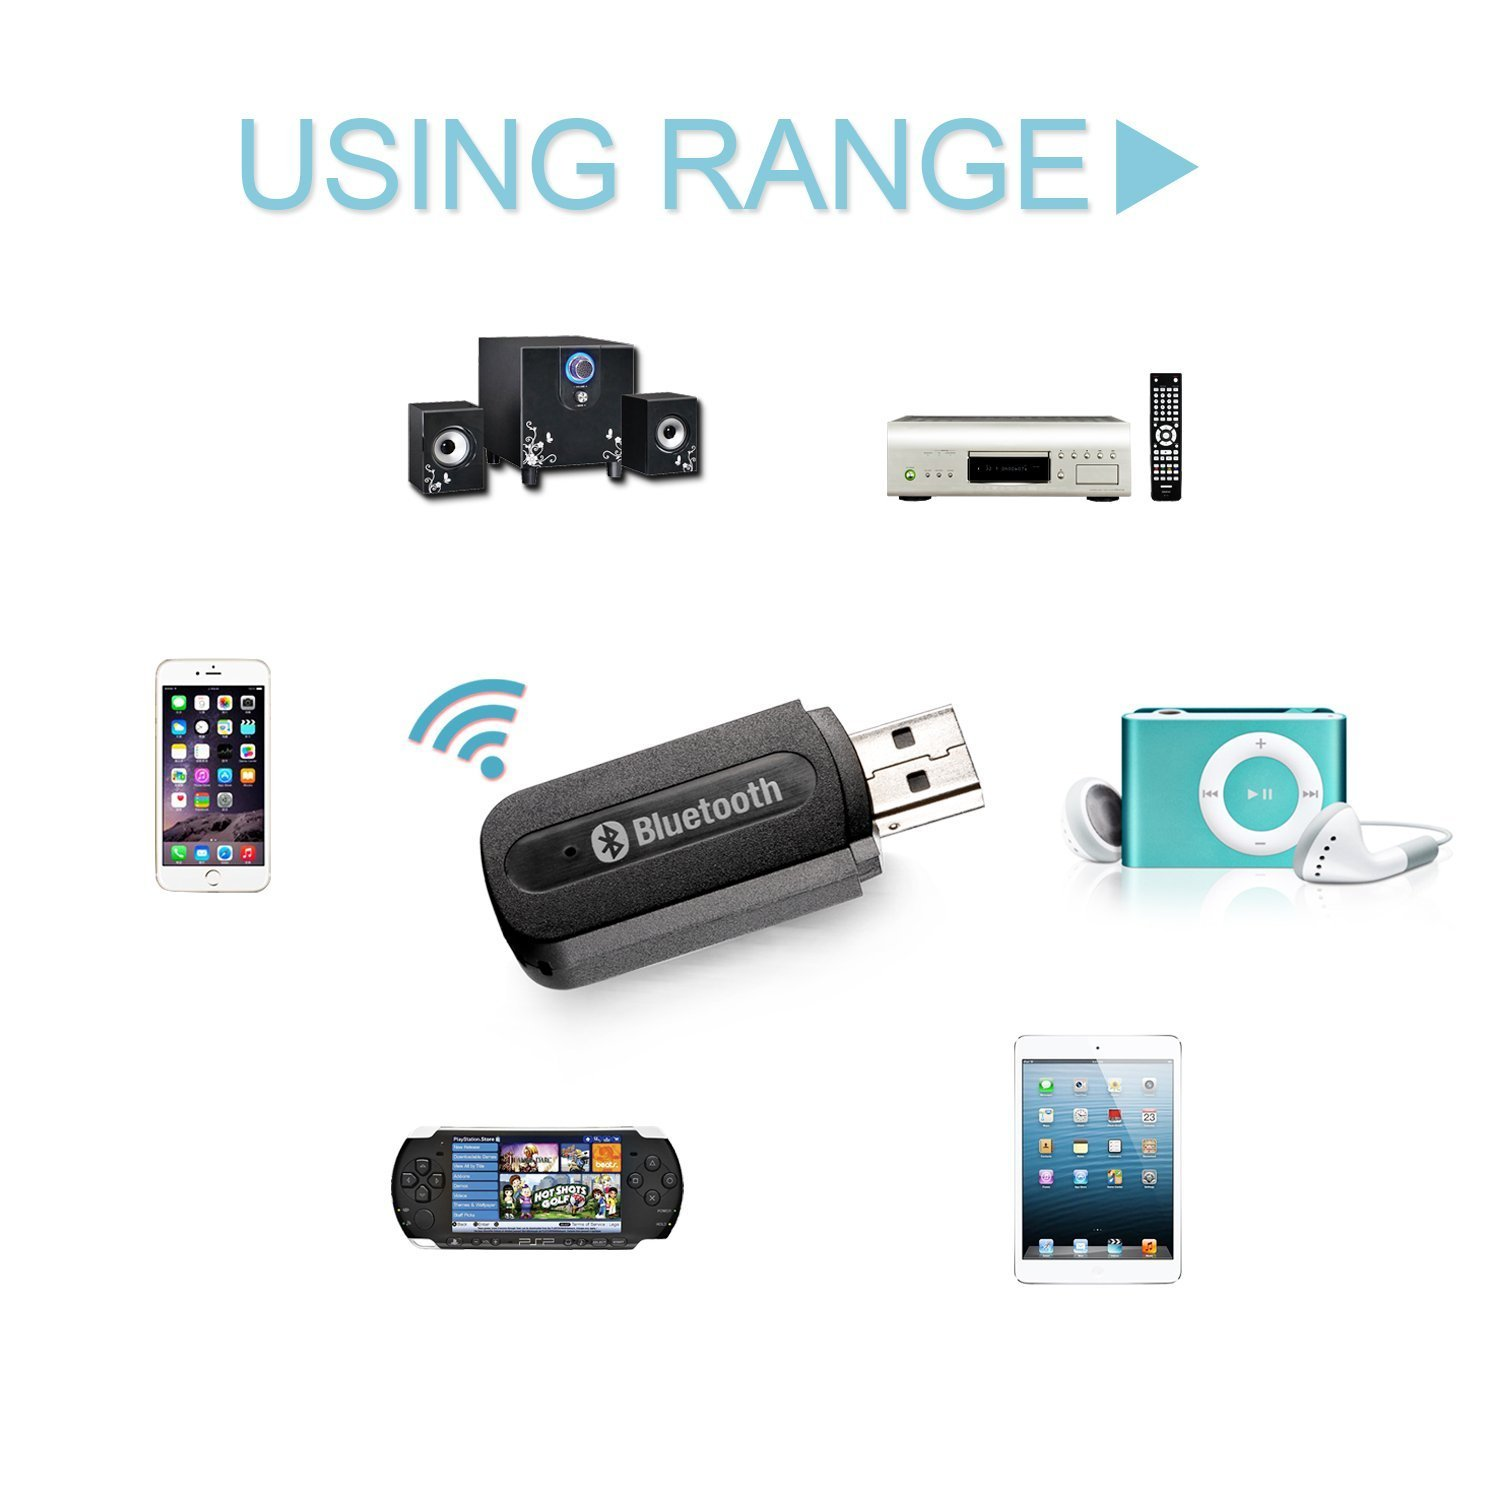 DHMXDC USB Bluetooth Car Kit Wireless Audio Music Receiver Adapter 3.5mm Stereo Output for Headphones Portable Speakers and Car Stereo Systems Black